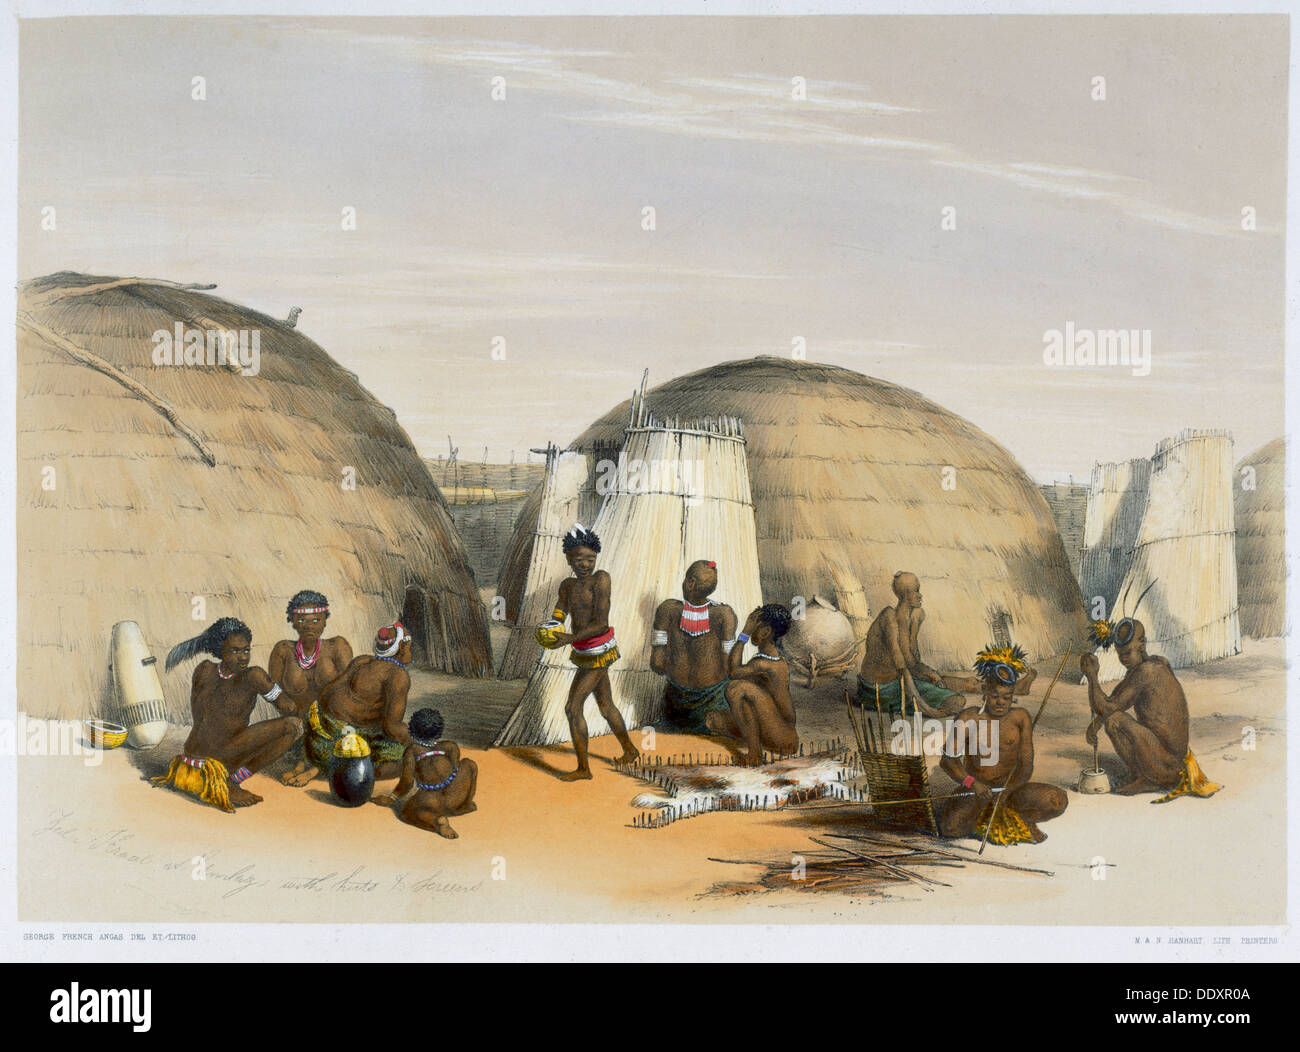 Zulu kraal at Umlazi with huts and screens, 1849. Artist: George French Angas - Stock Image